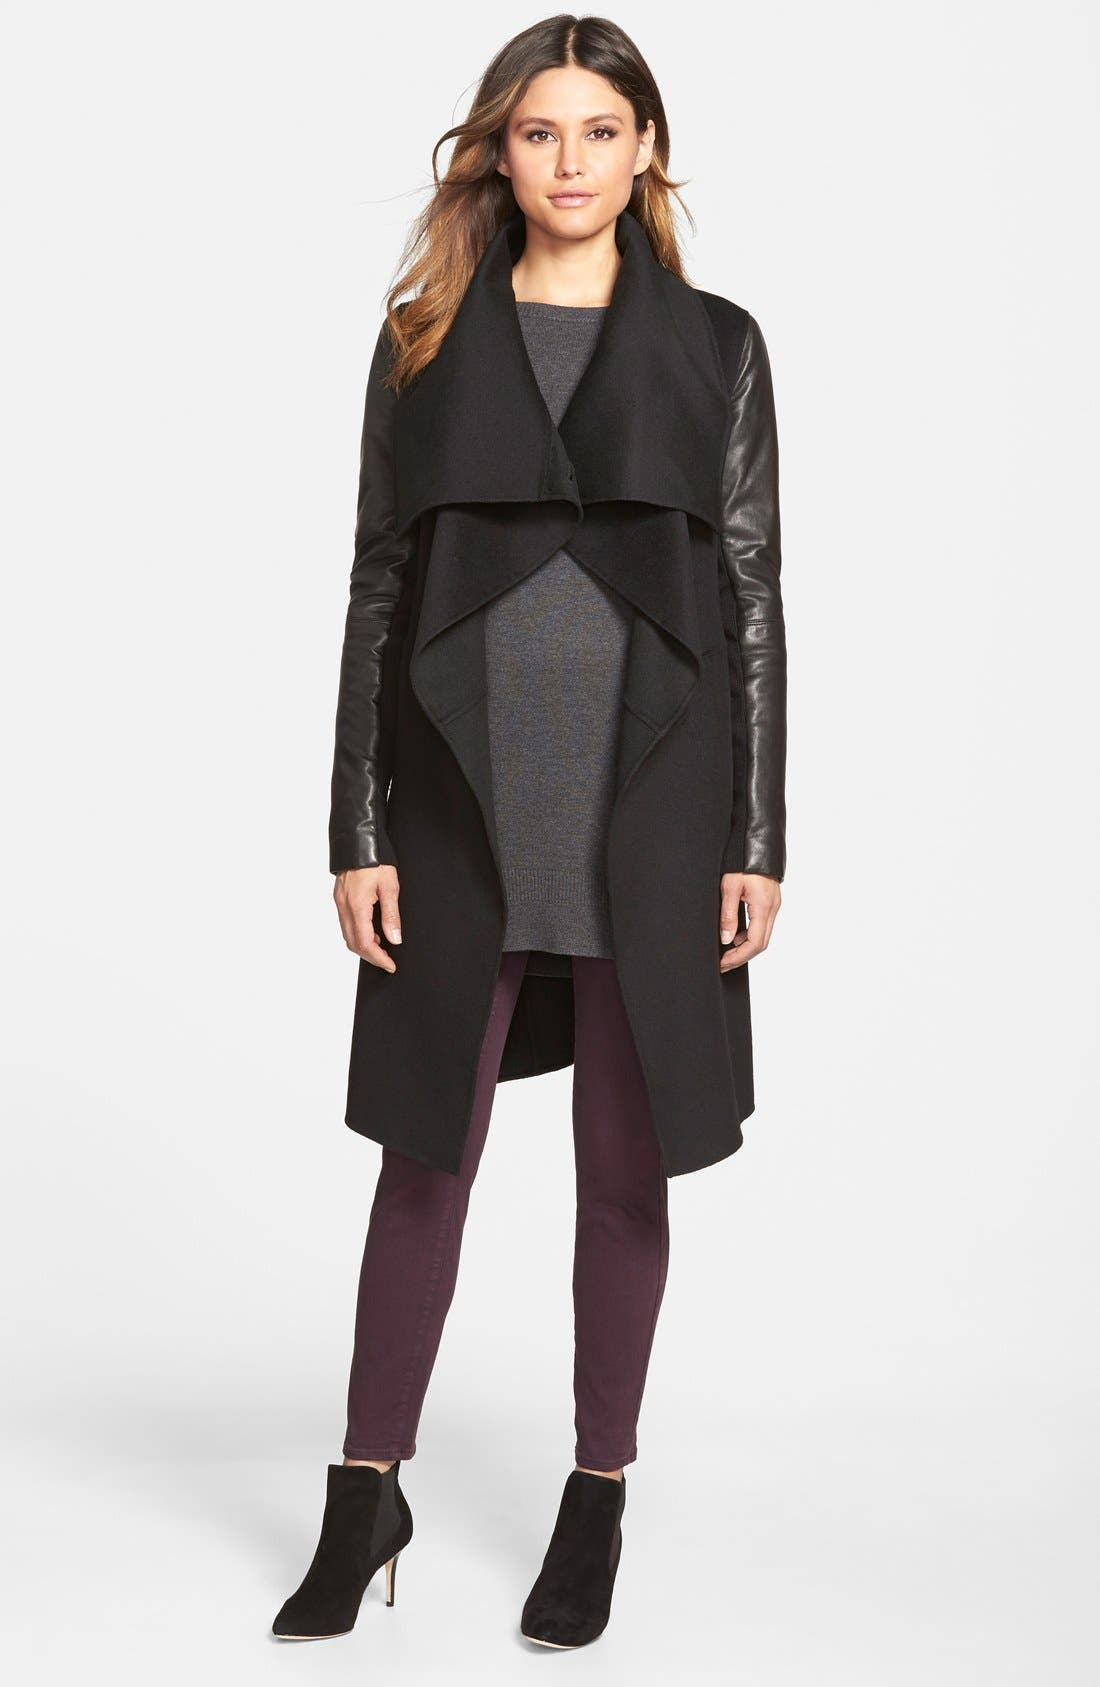 Wool Blend Coat with Leather Sleeves,                             Main thumbnail 1, color,                             Black